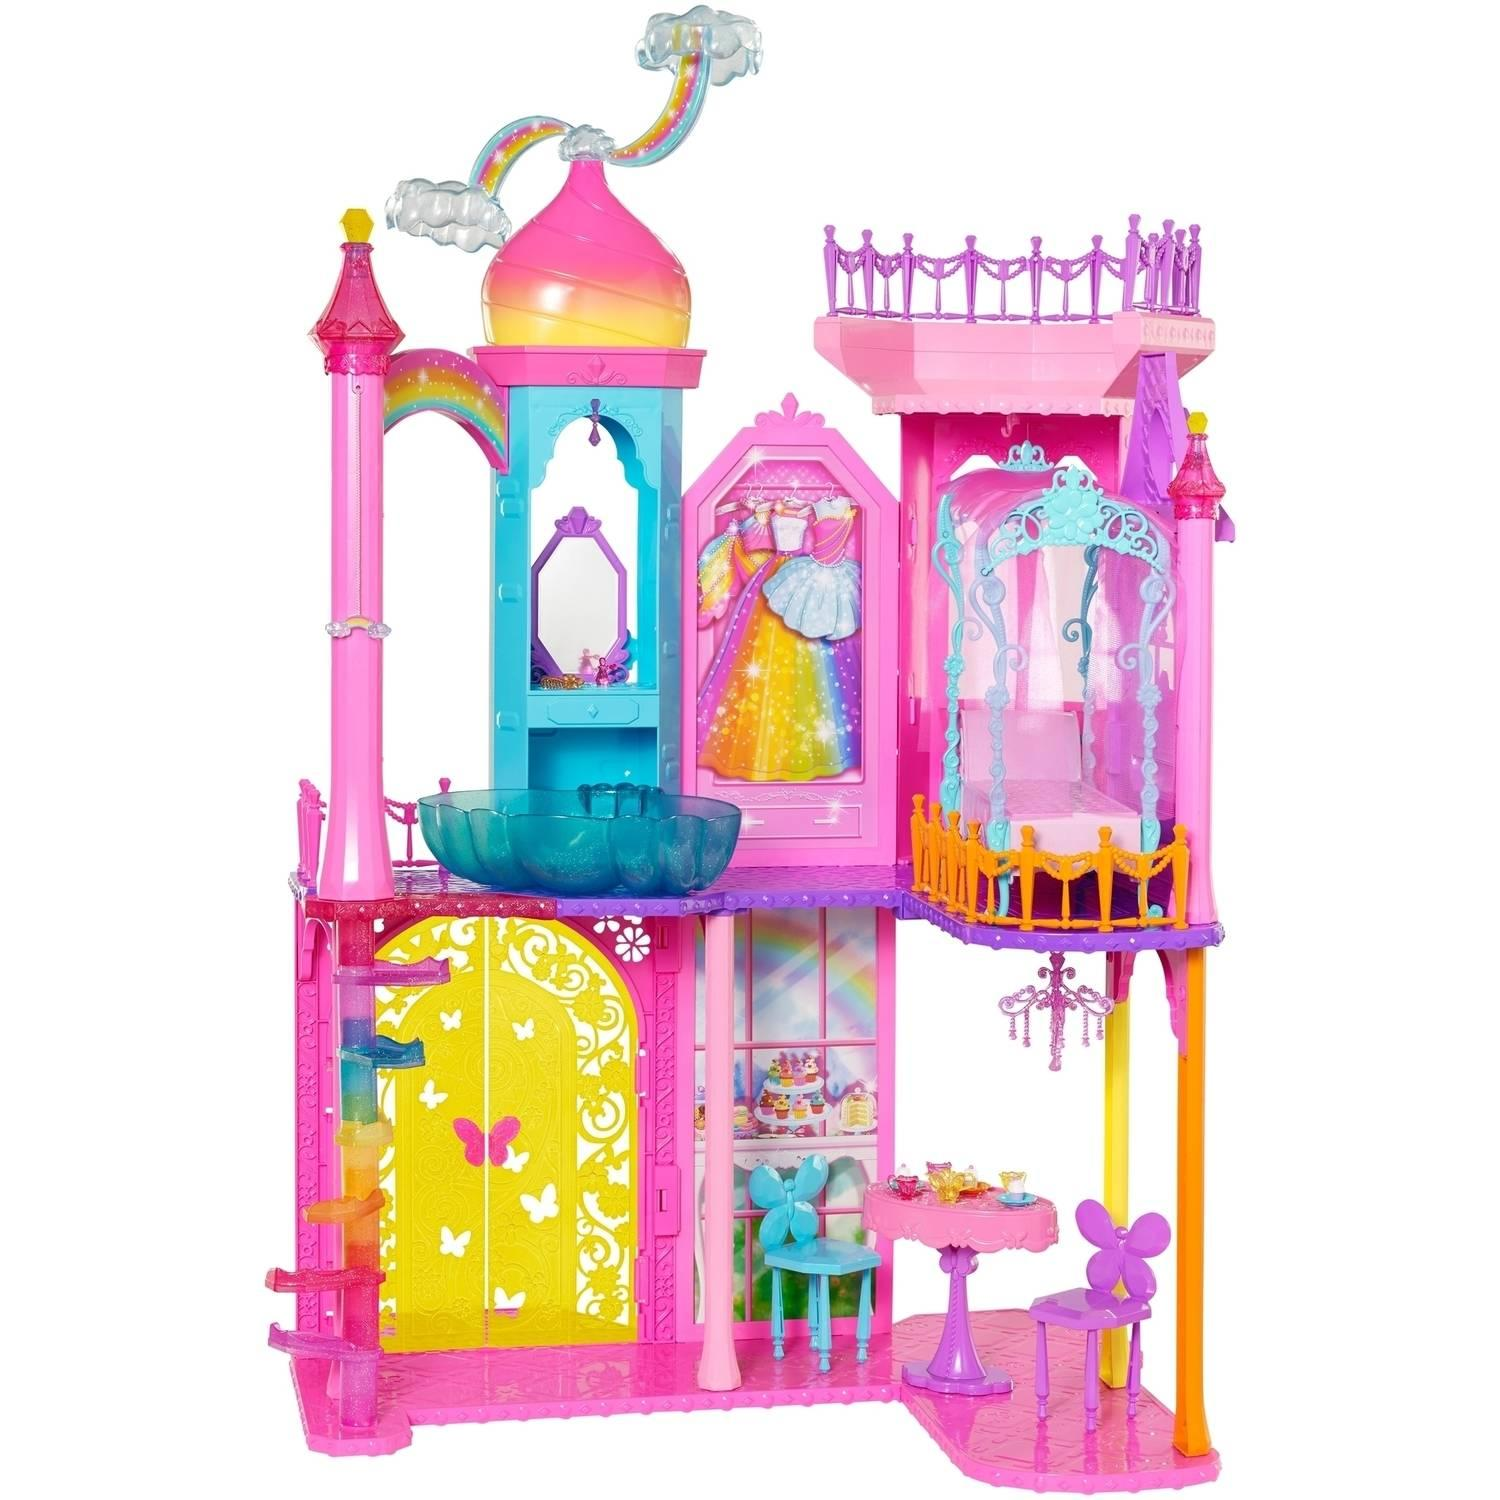 barbie rainbow cove princess castle playset - Halloween Mart Coupon Code